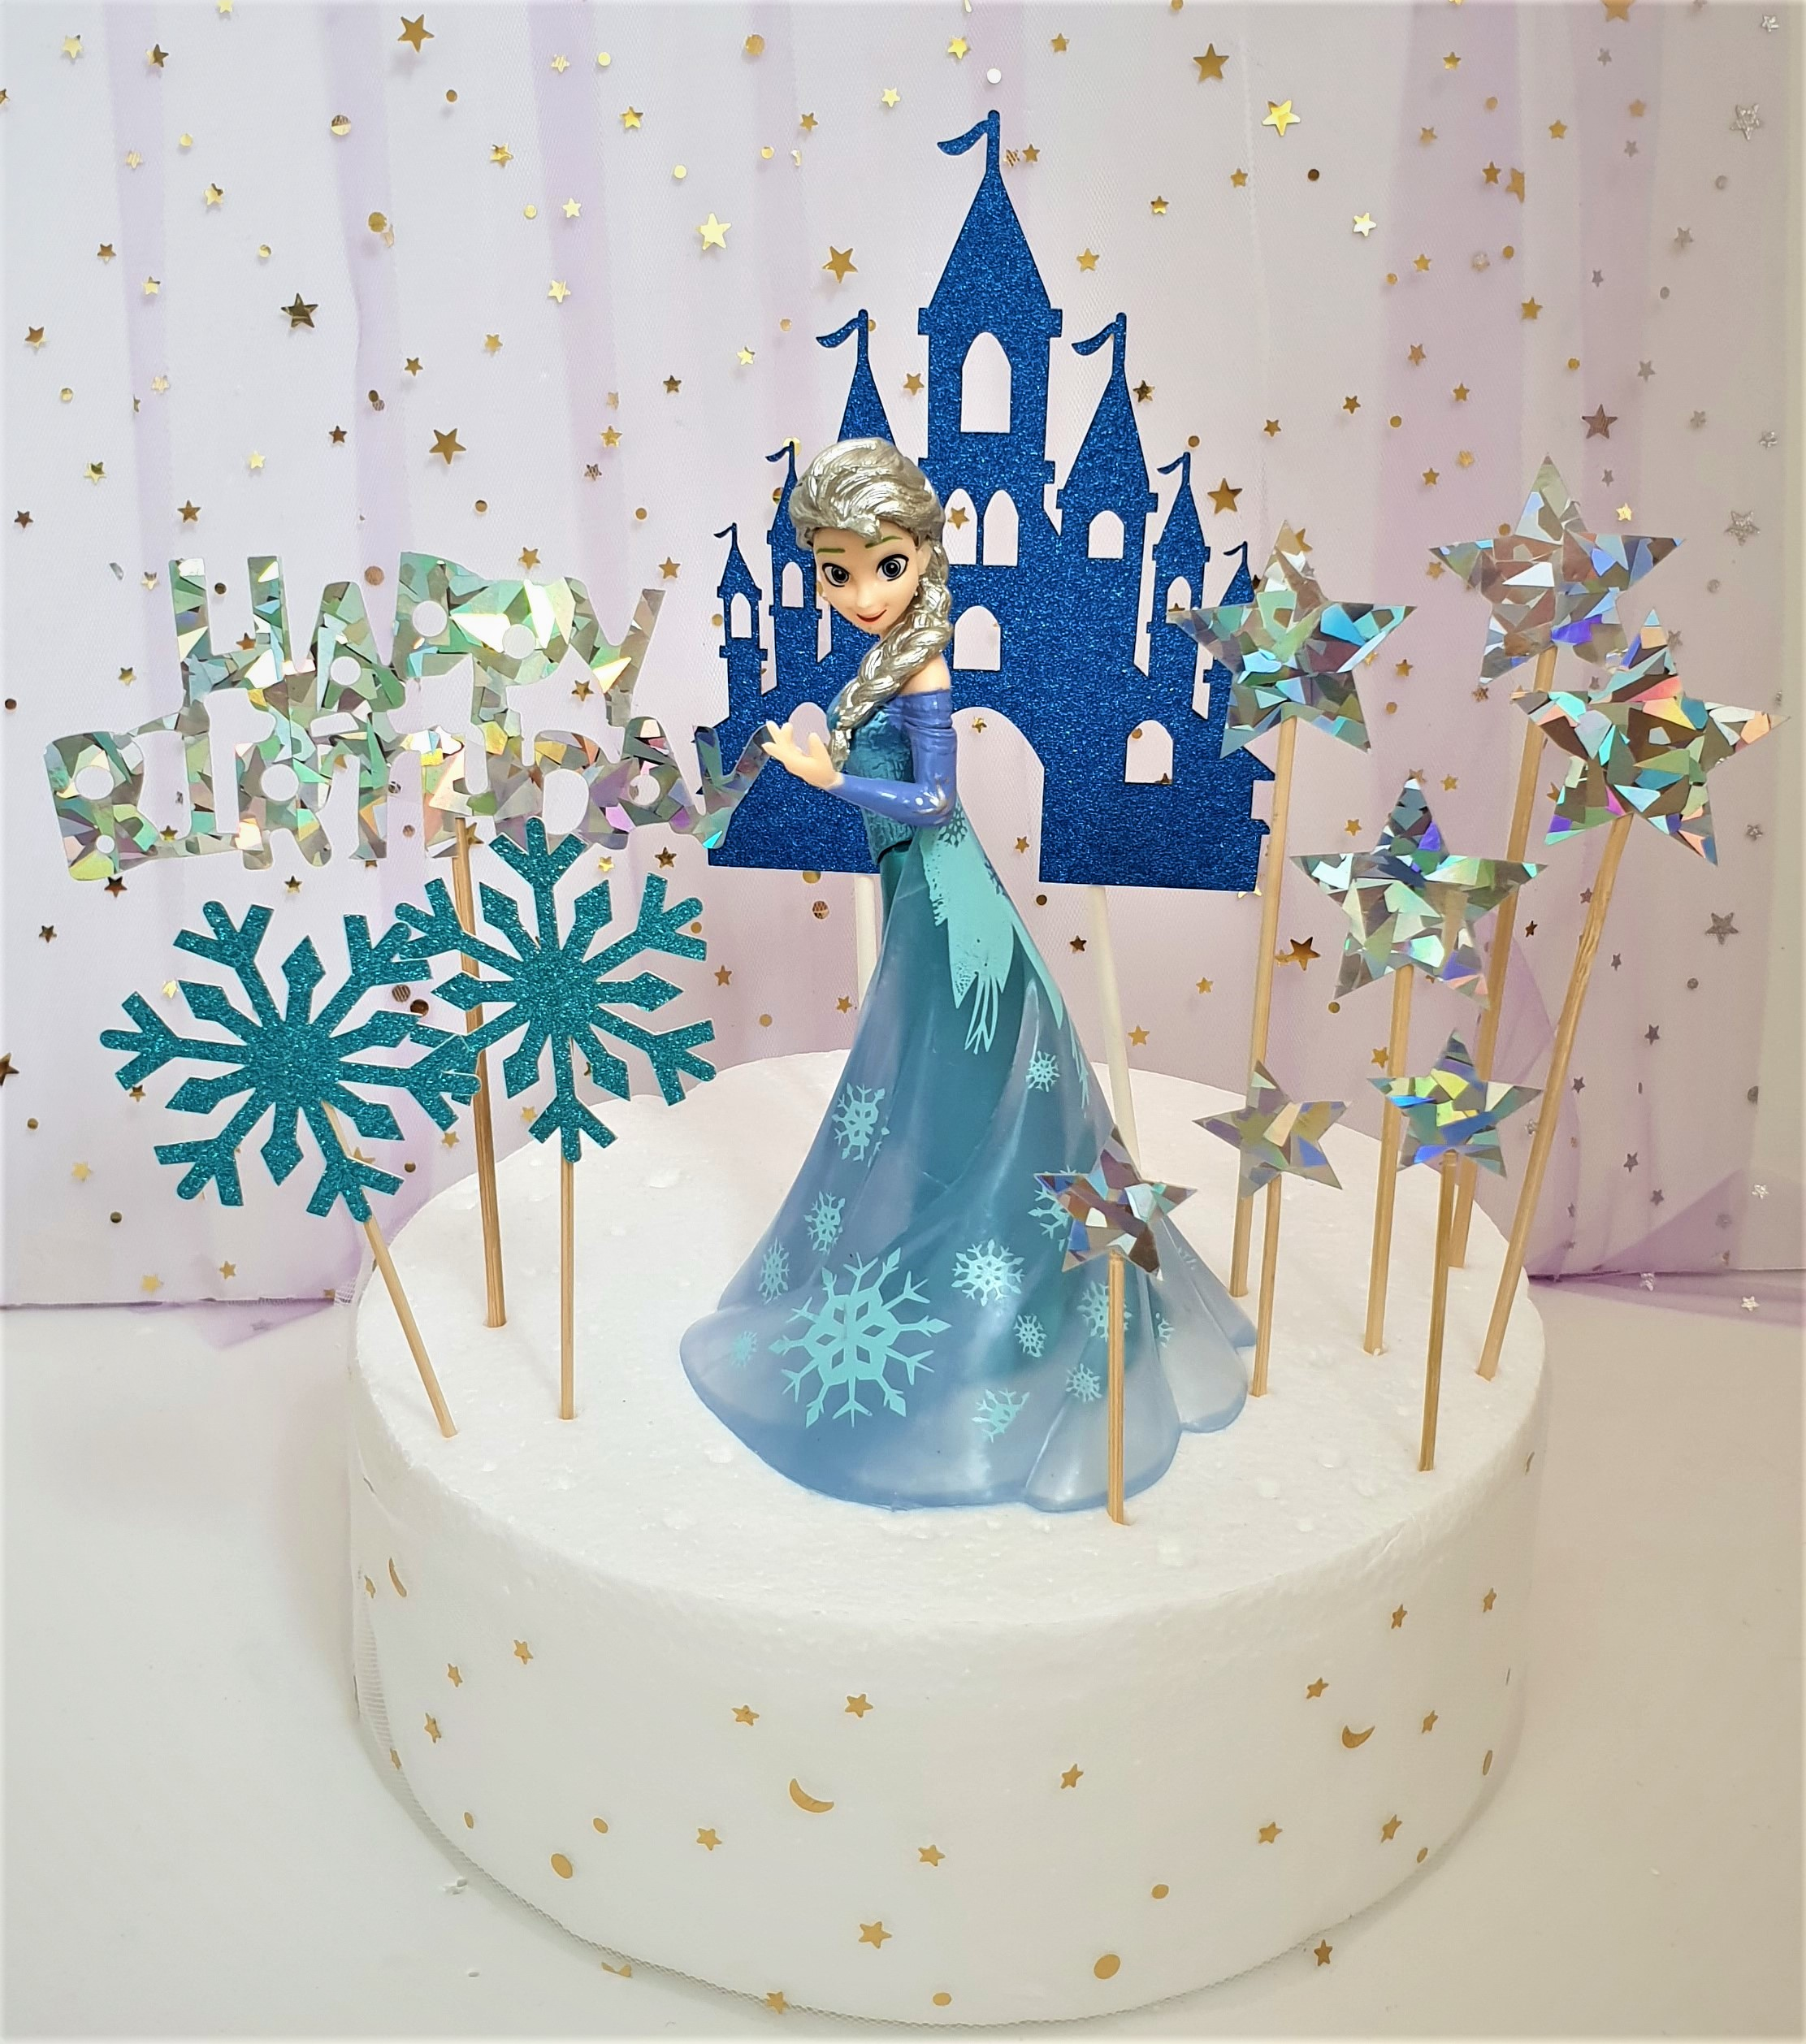 Stupendous Birthday Cake Disney Frozen Princess Elsa With Stars Happy Funny Birthday Cards Online Inifofree Goldxyz